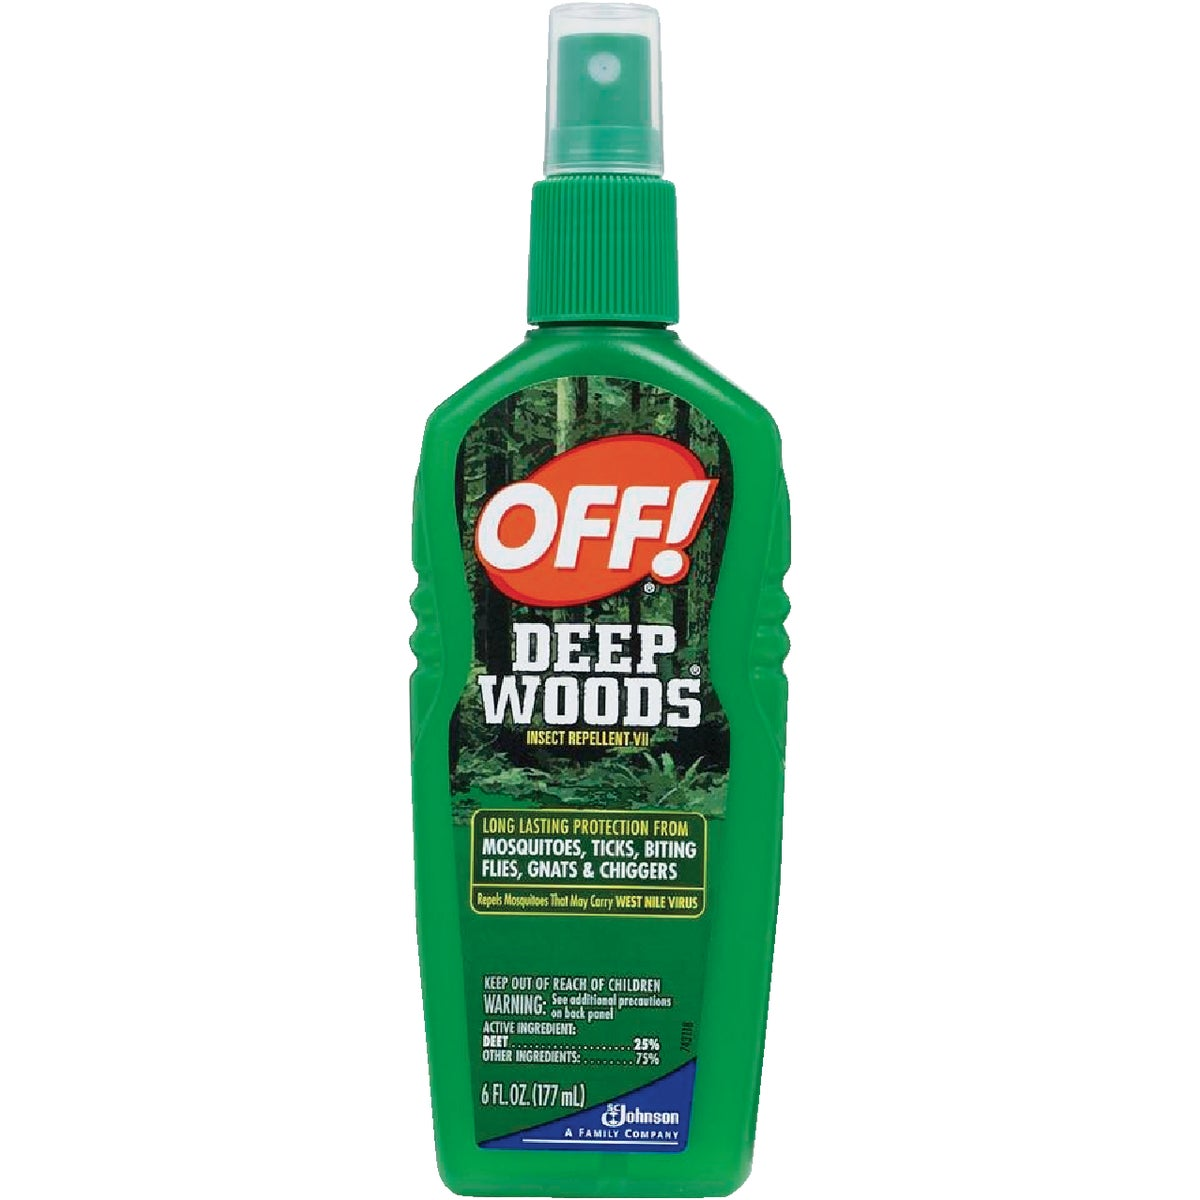 DEEP WOODS BUG REPELLENT - 21845 by Sc Johnson